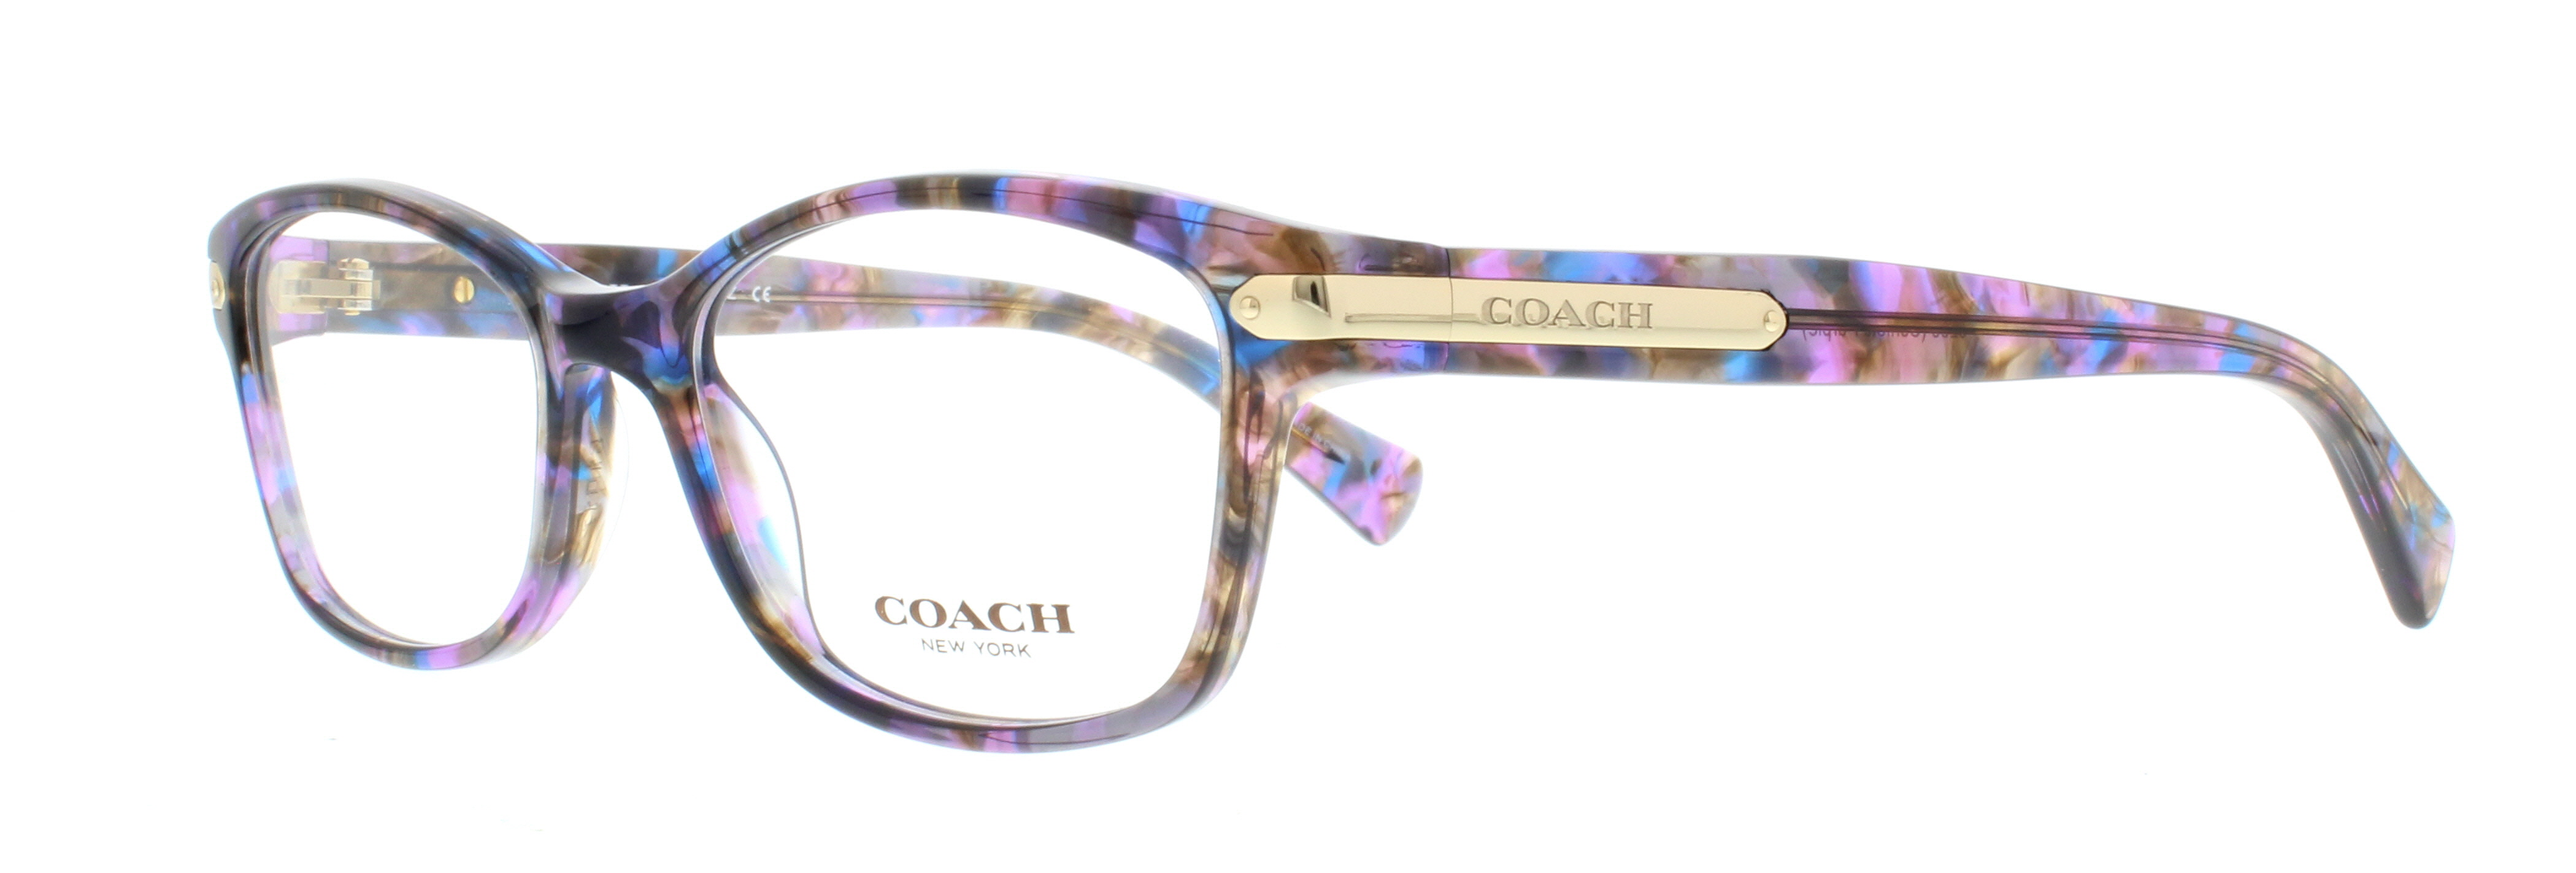 coach eyeglasses hc6065 5288 confetti purple 51mm walmartcom